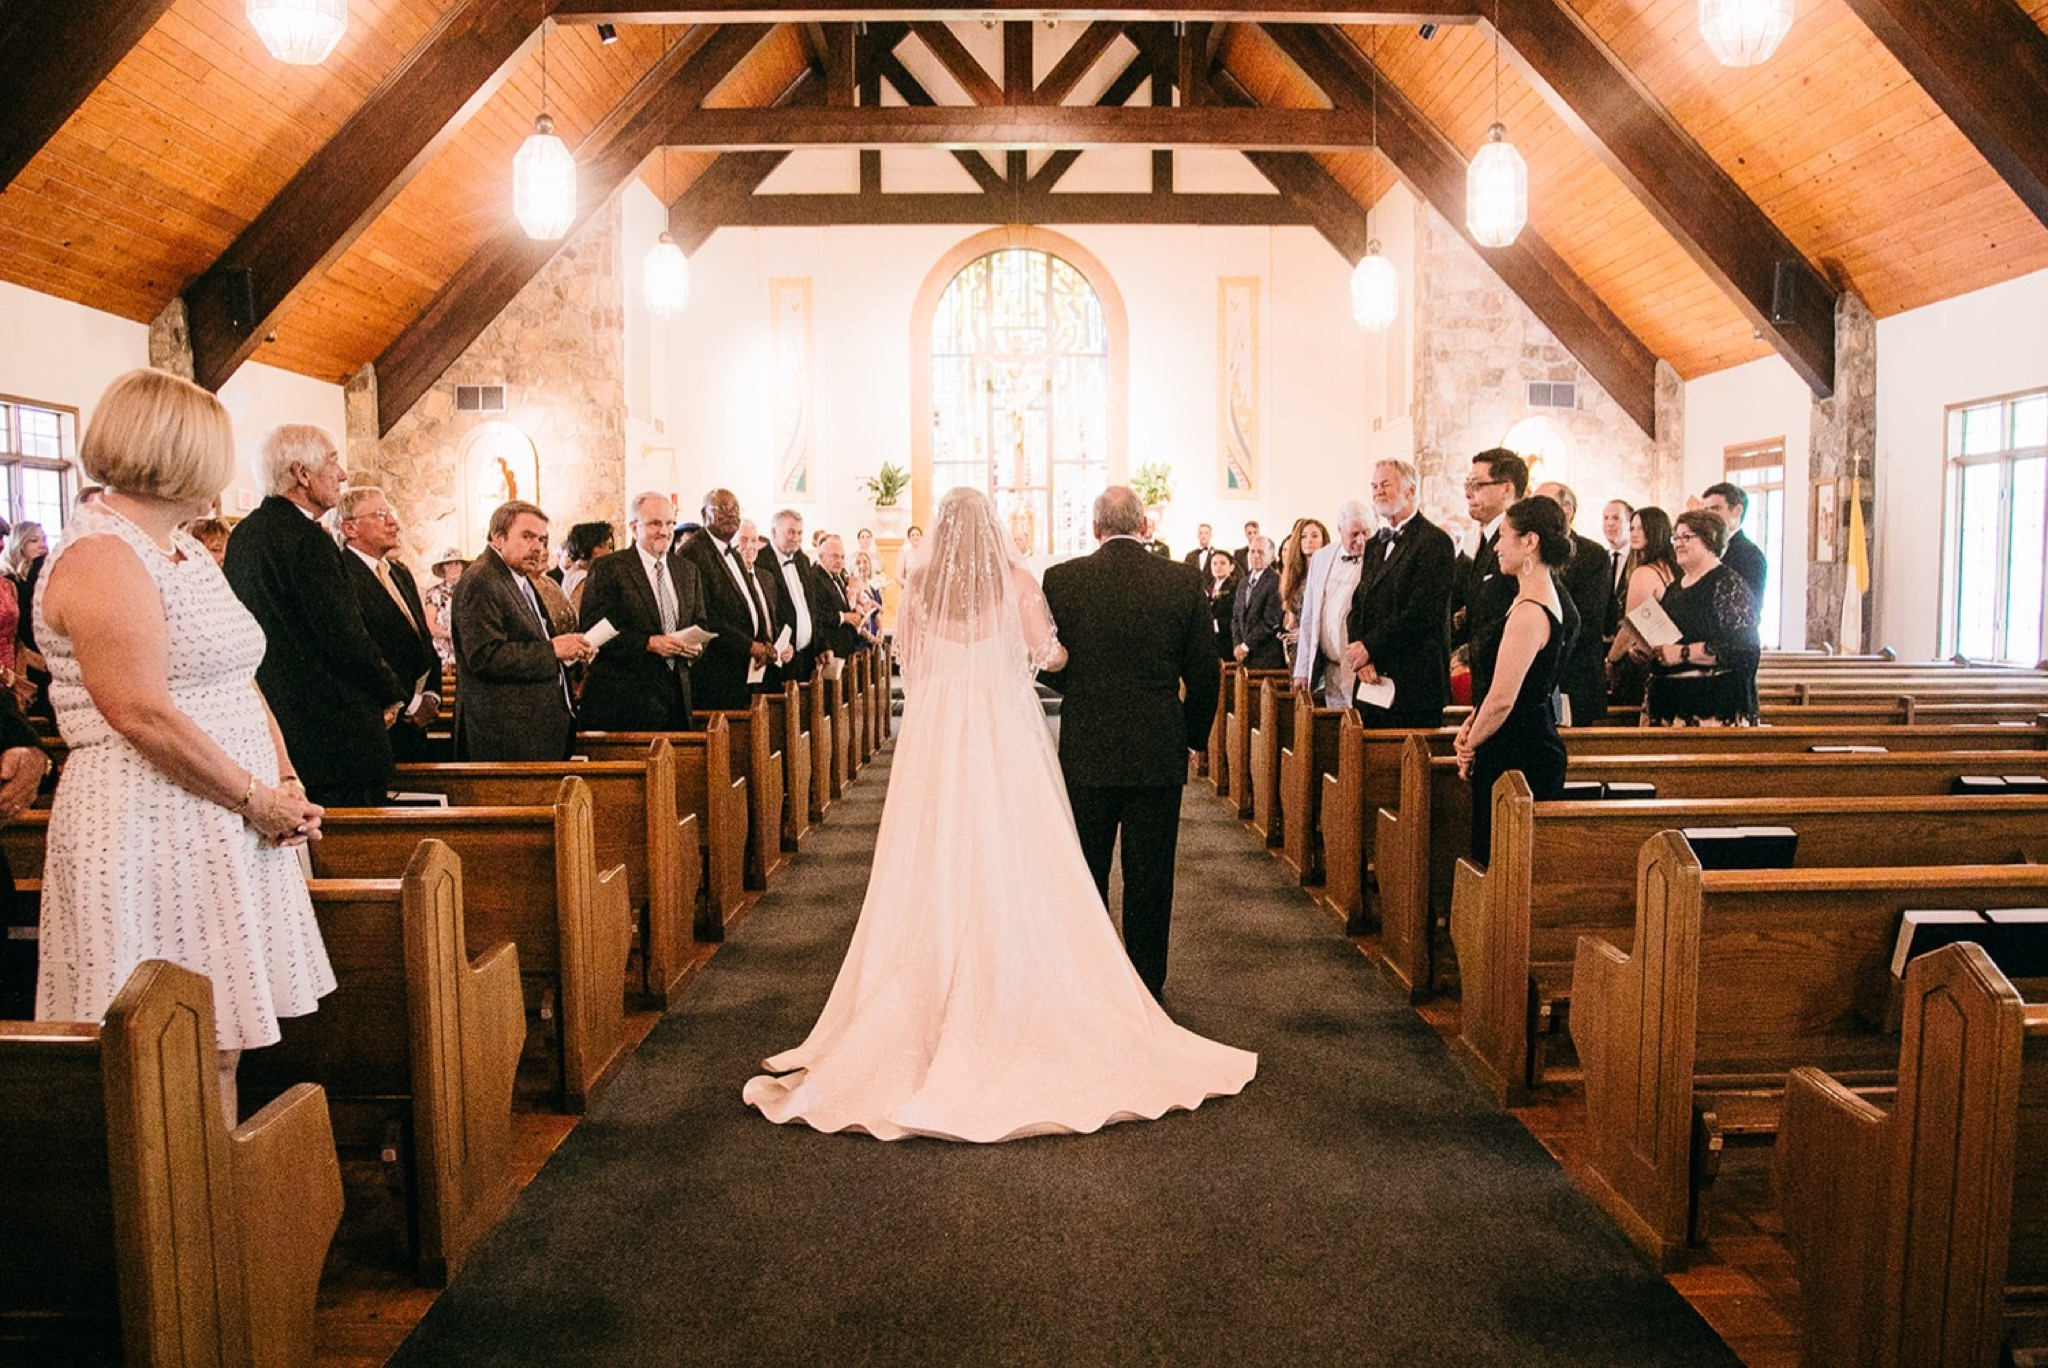 bride and her father walk between wooden pews as wedding guests stand and watch